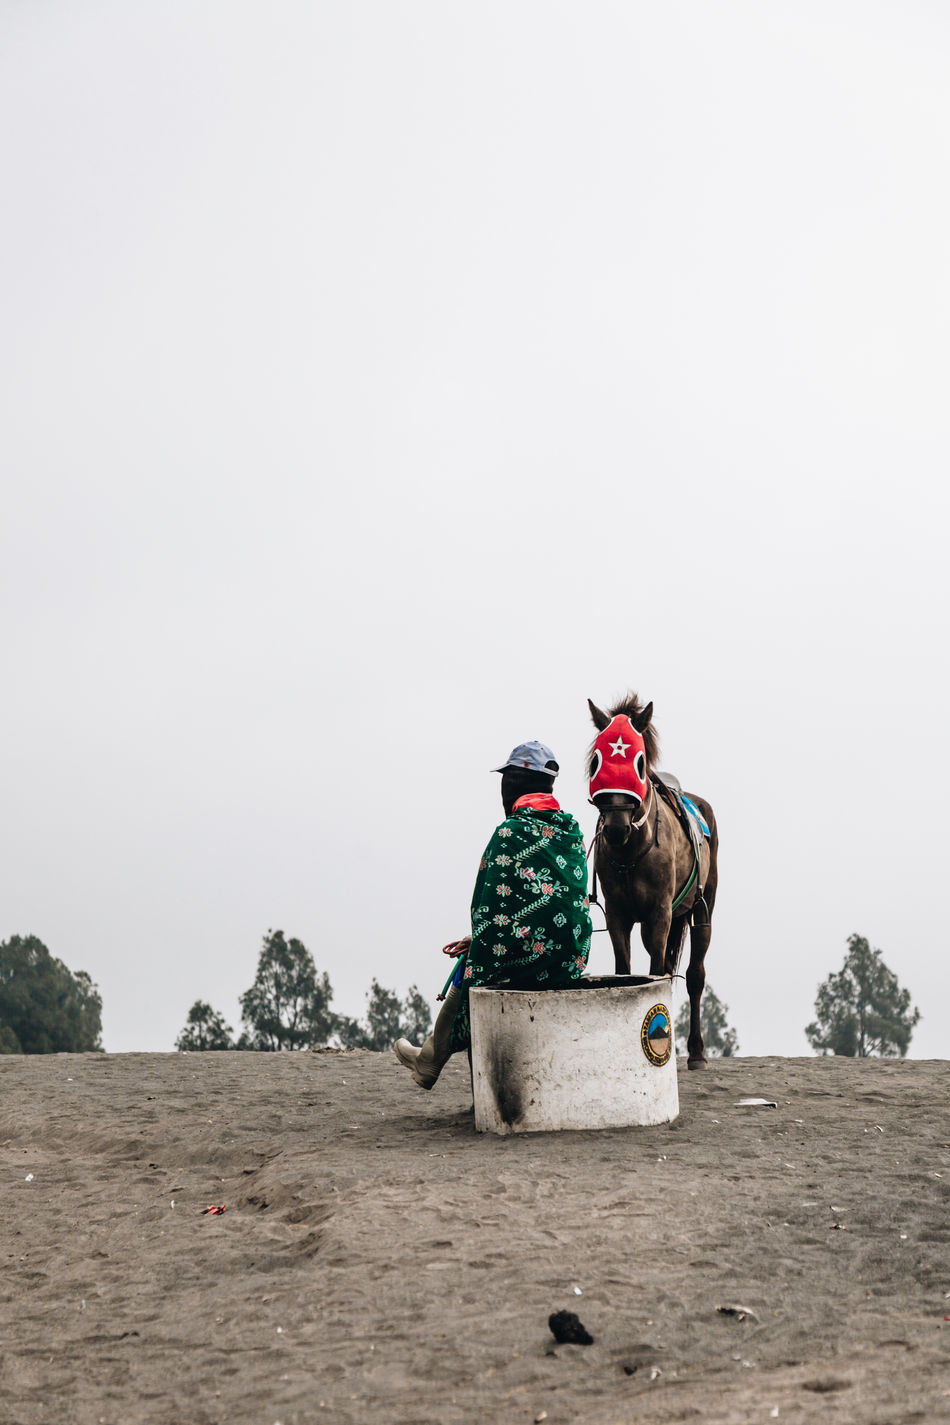 Bromo Mountain, Java, Indonesia Bromo Bromo Volcano Clear Sky Copy Space Day Desert Domestic Animals Horse Horseback Riding Livestock Mammal Men Nature One Animal Outdoors People Real People Rear View Riding Sitting Sky Transportation Travel Destinations Working Animal